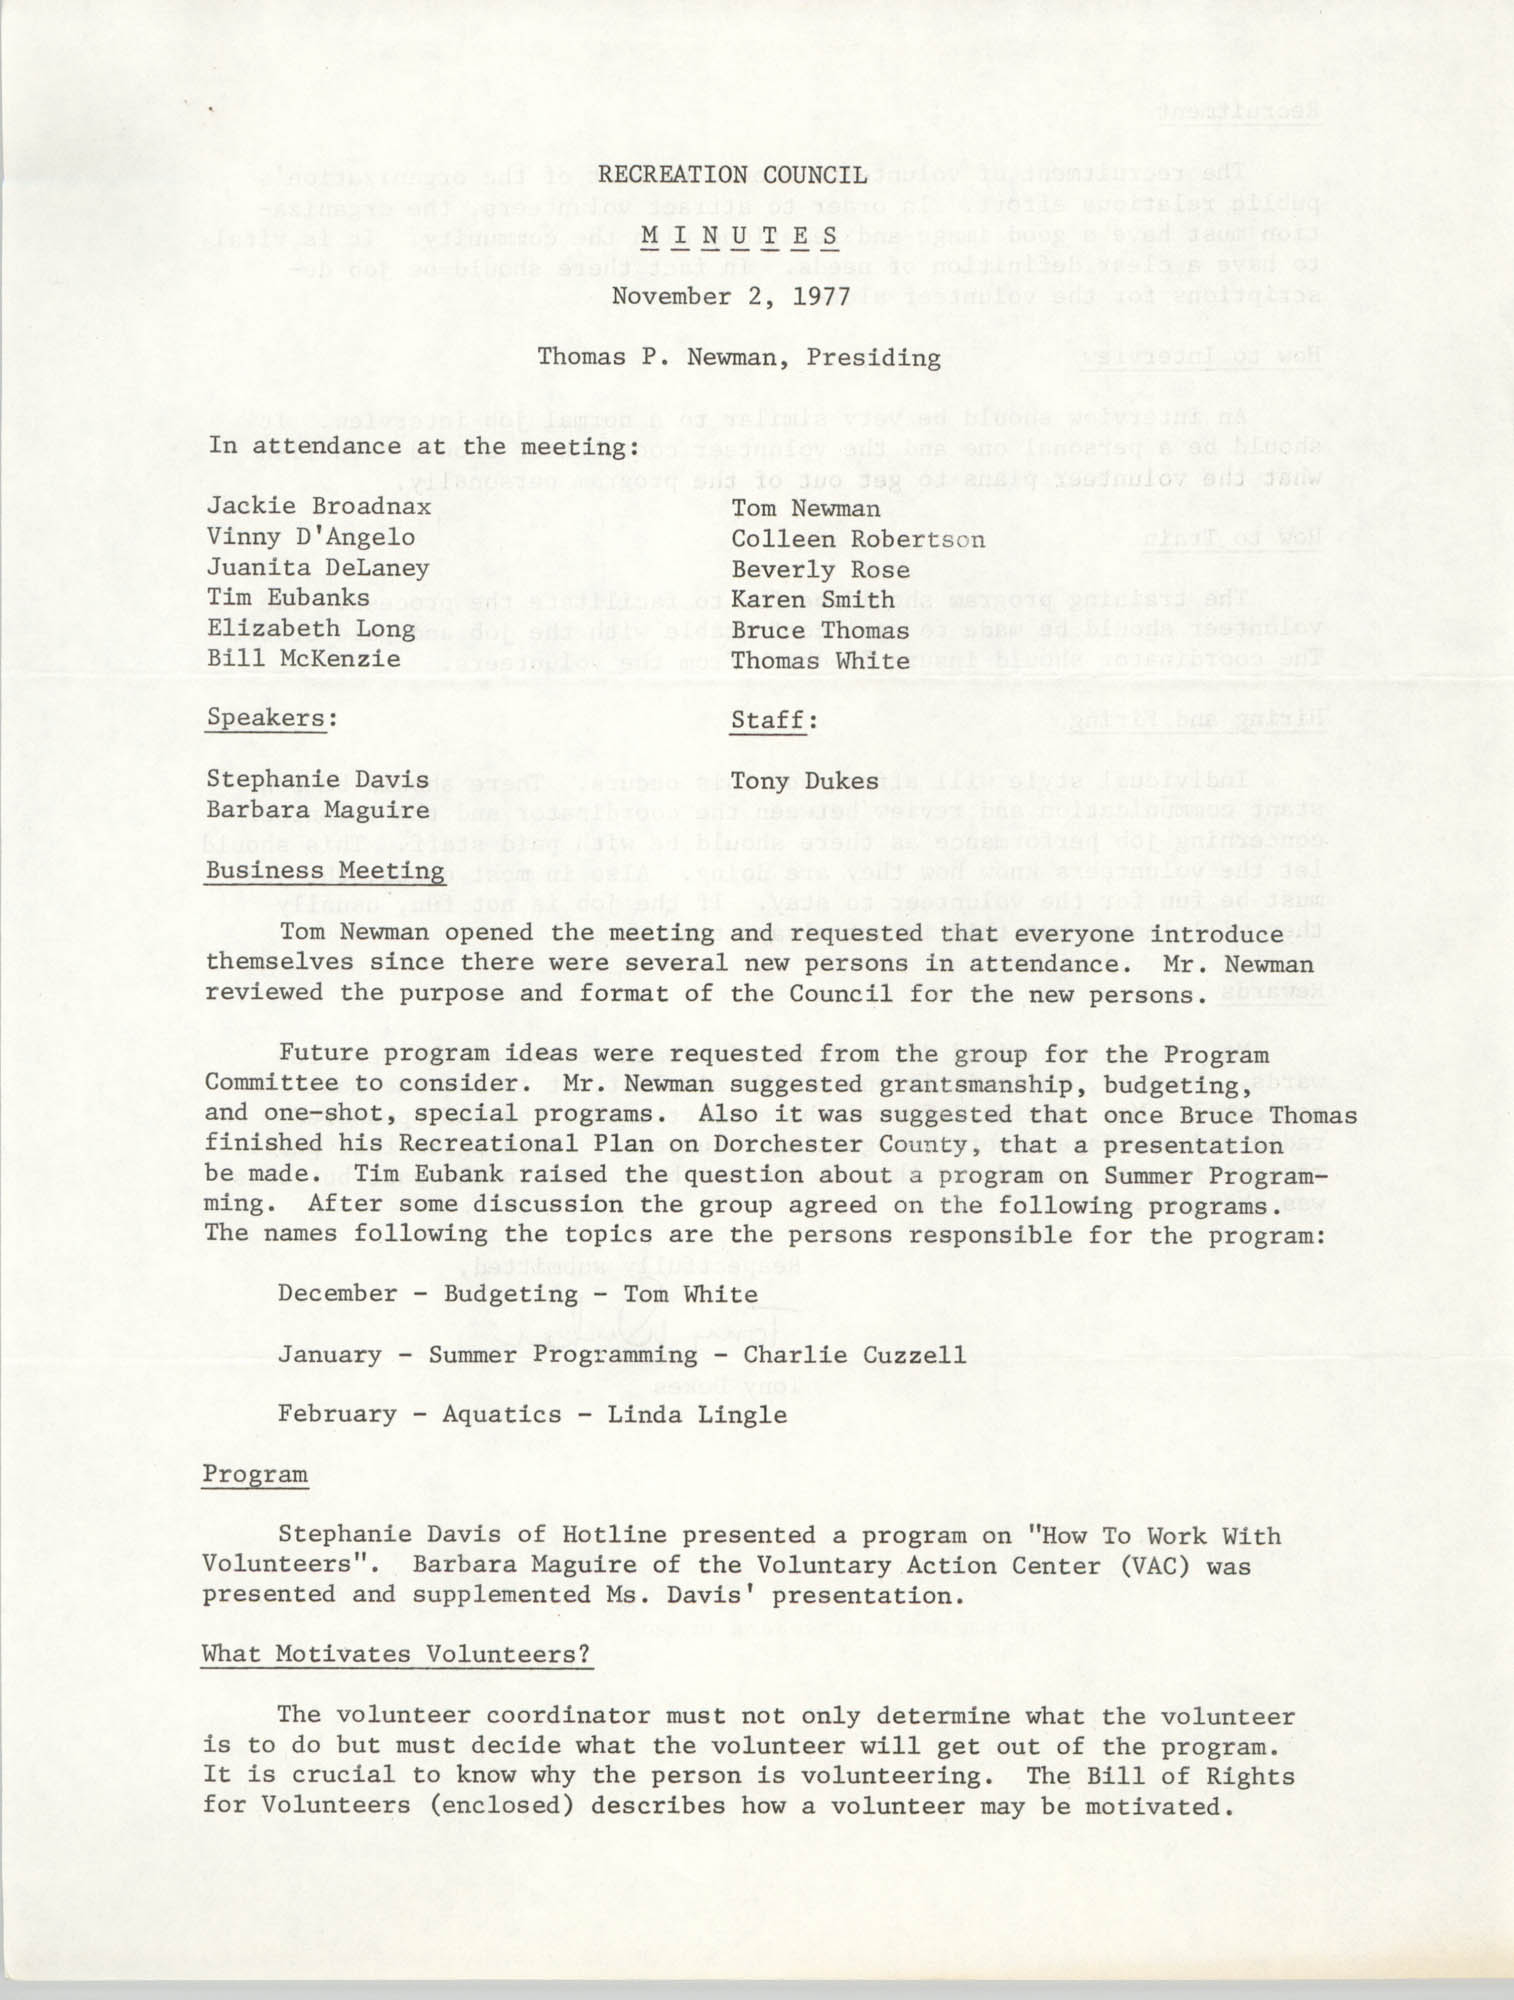 Minutes to the Recreation Council, November 2, 1977